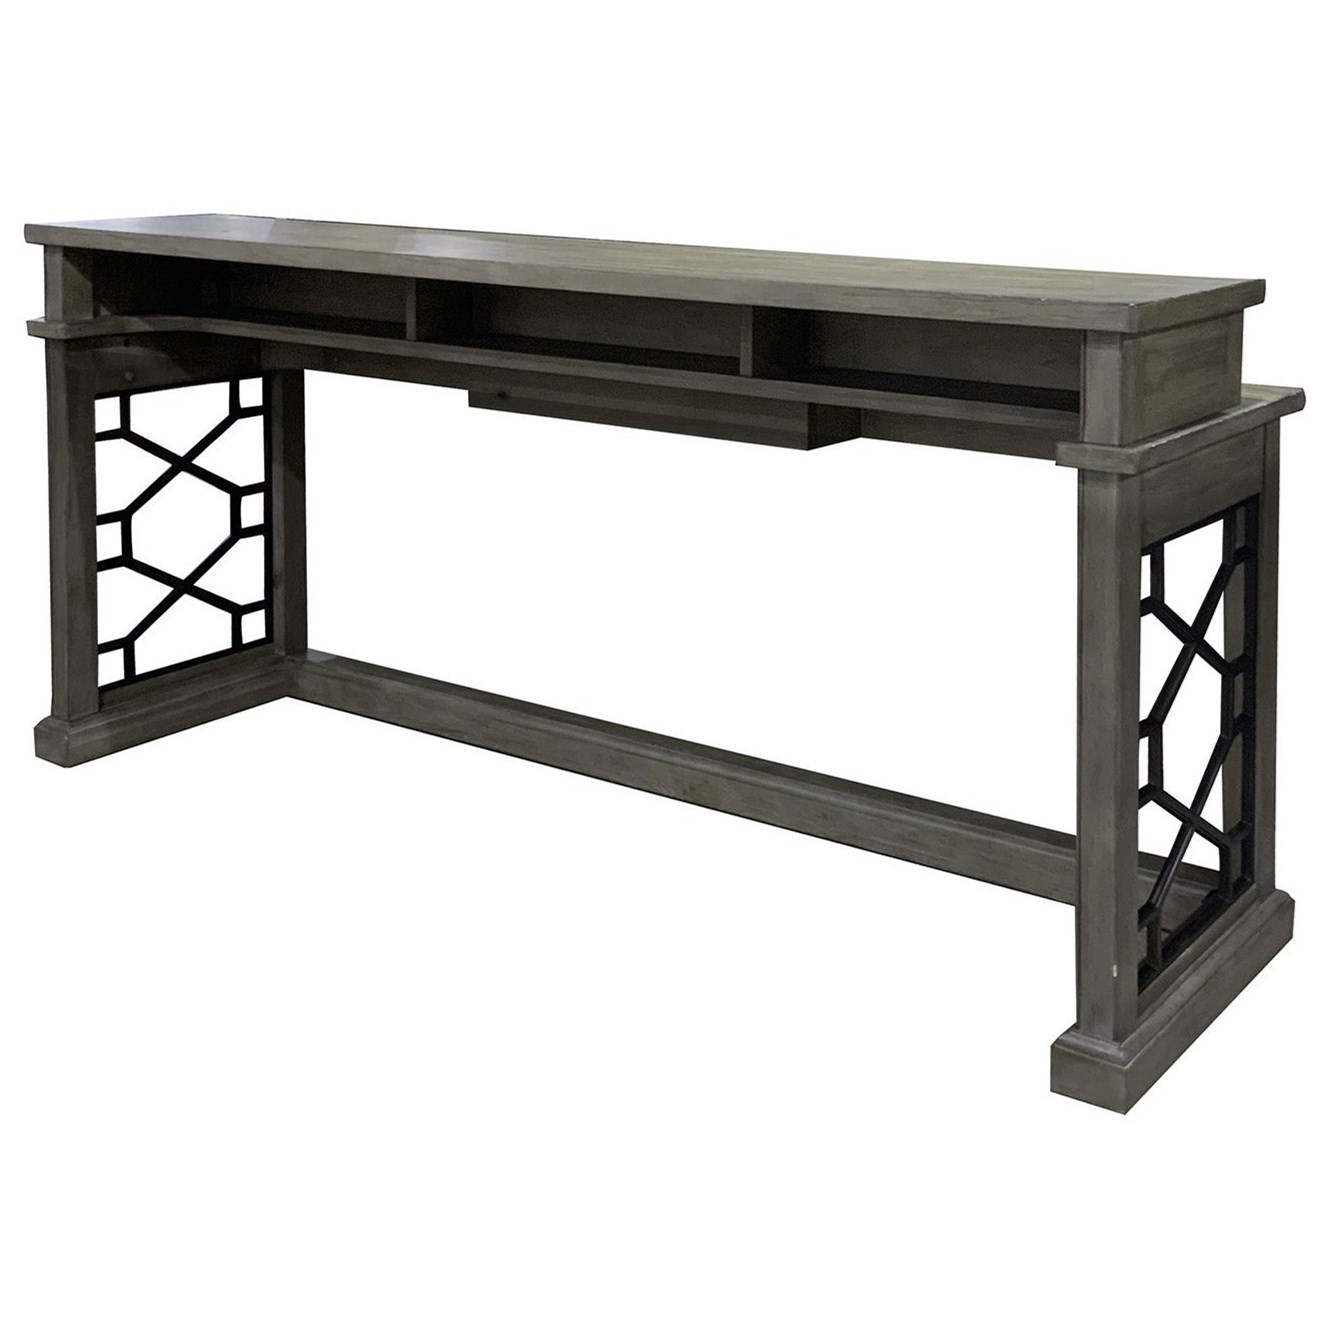 Sablet Sablet Everywhere Console Table by Parker House at Morris Home